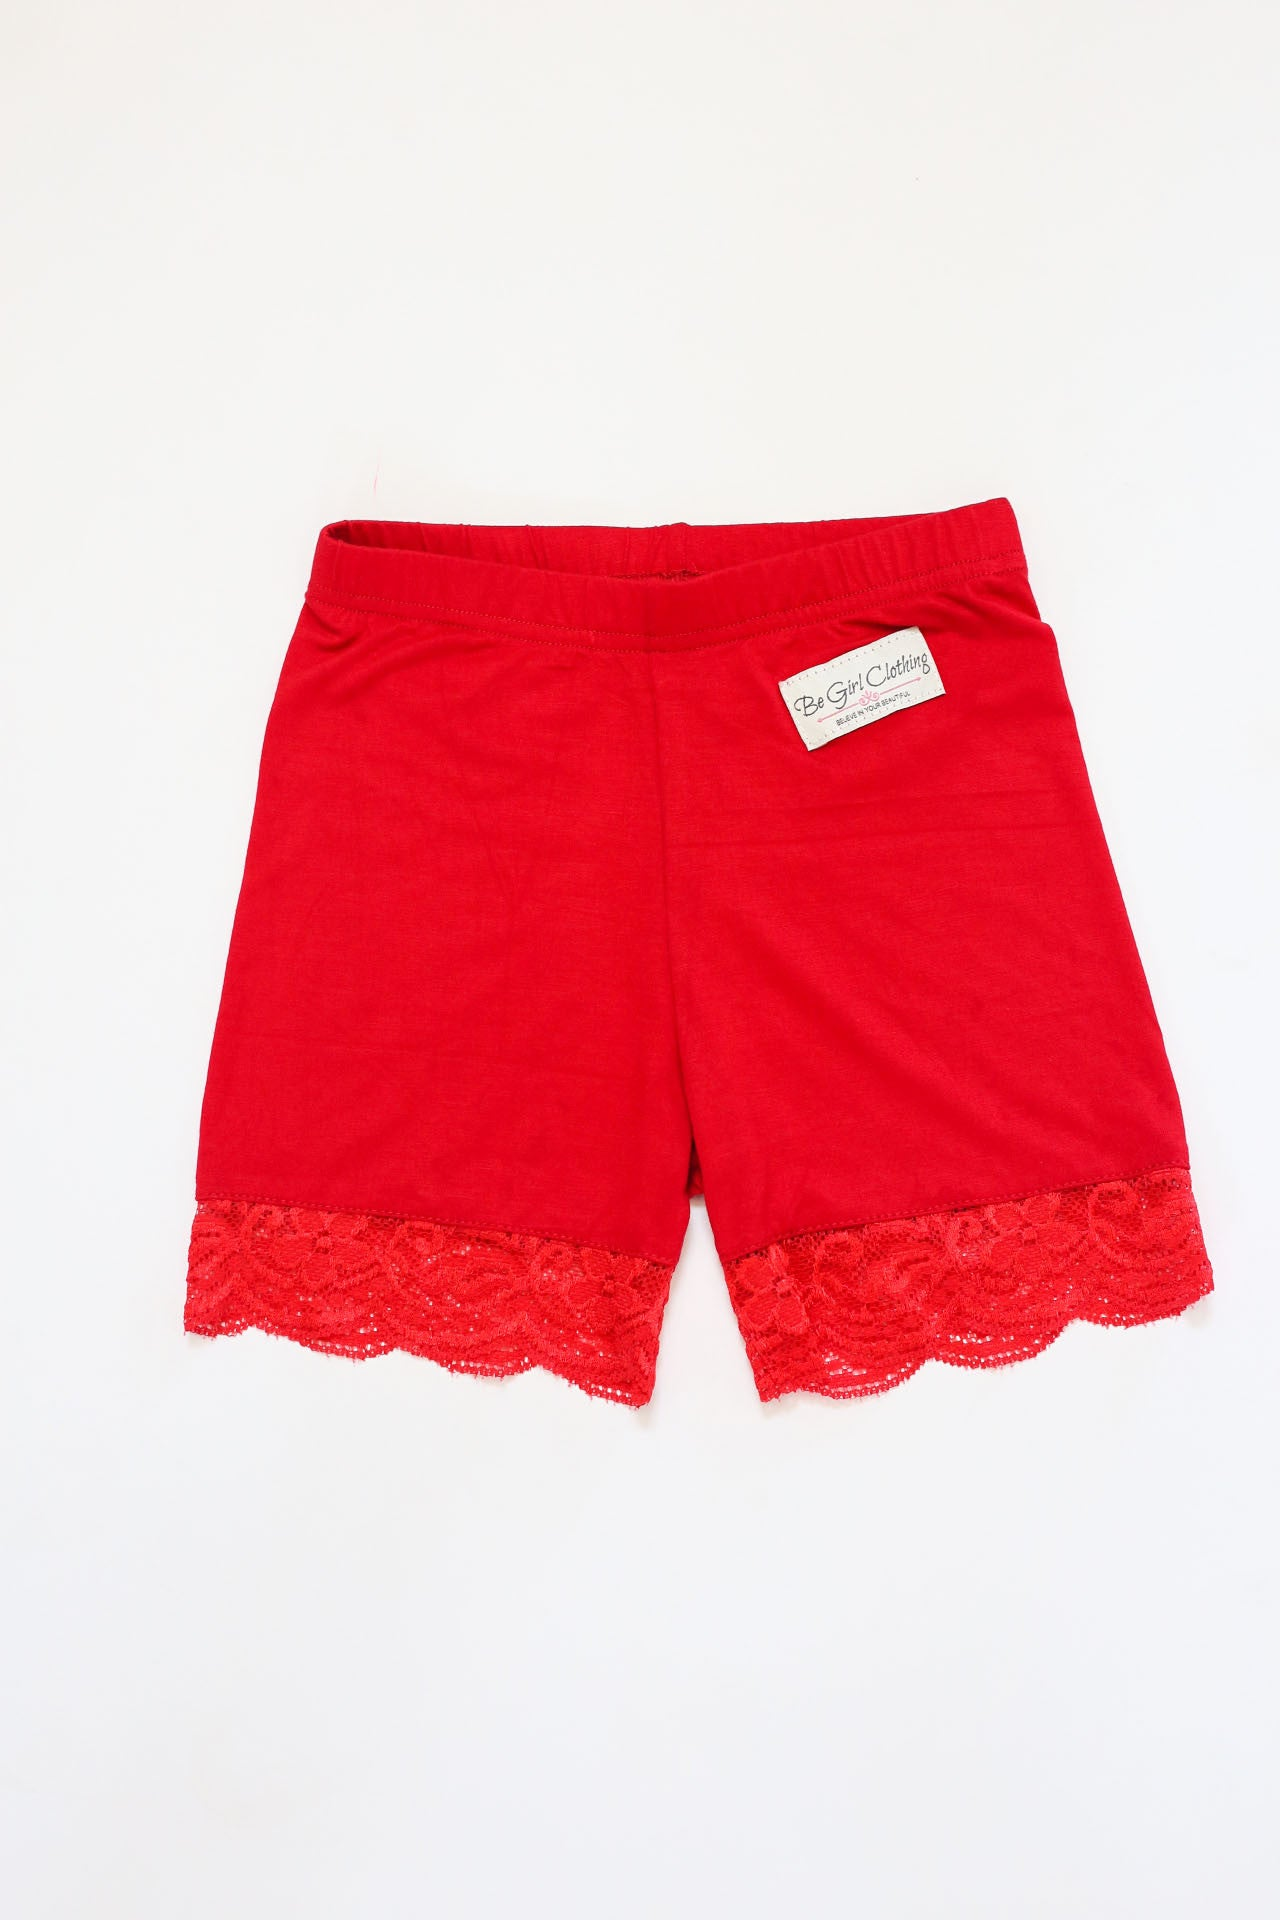 Red Undershorts - Be Girl Clothing